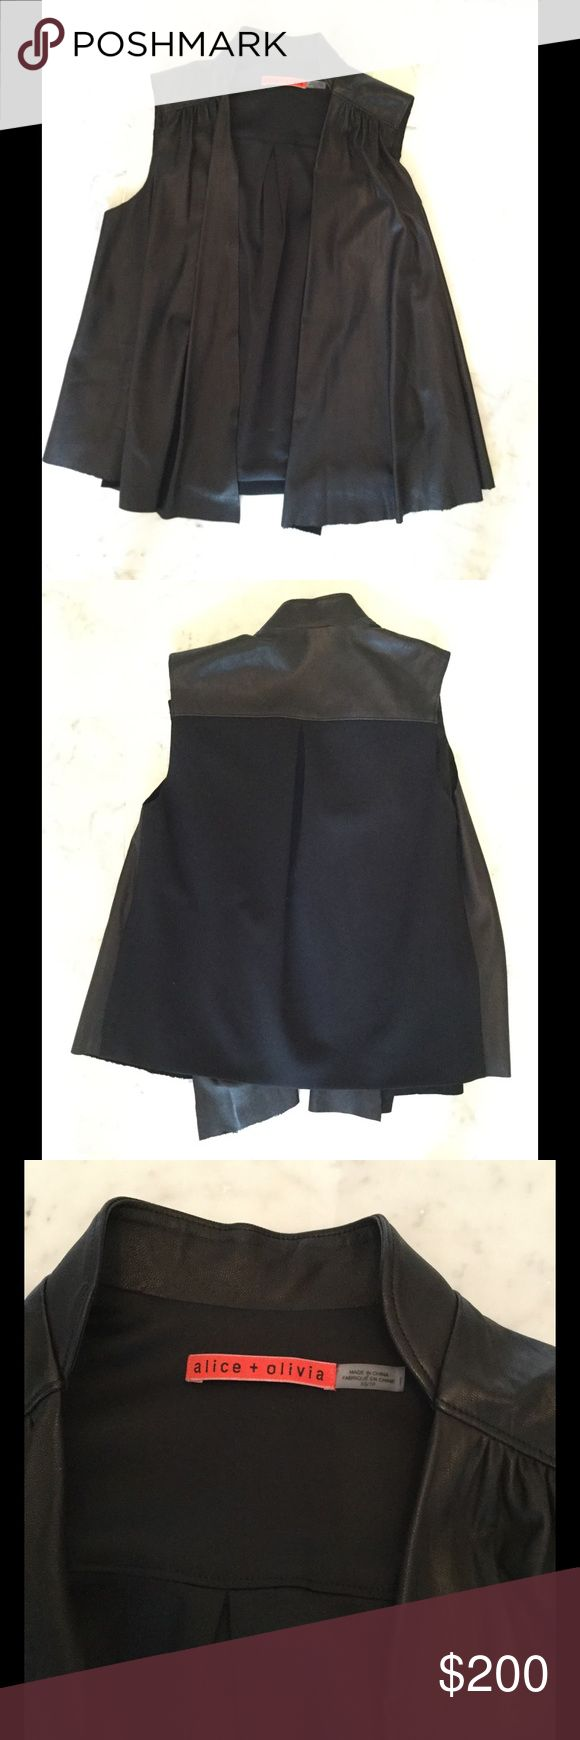 Alice and Olivia Black Leather Vest In excellent like new condition. Client may have worn 1-2x tops. TTS. Back is a heavier knit. NO TRADES, MODELING OR PP. Alice + Olivia Jackets & Coats Vests